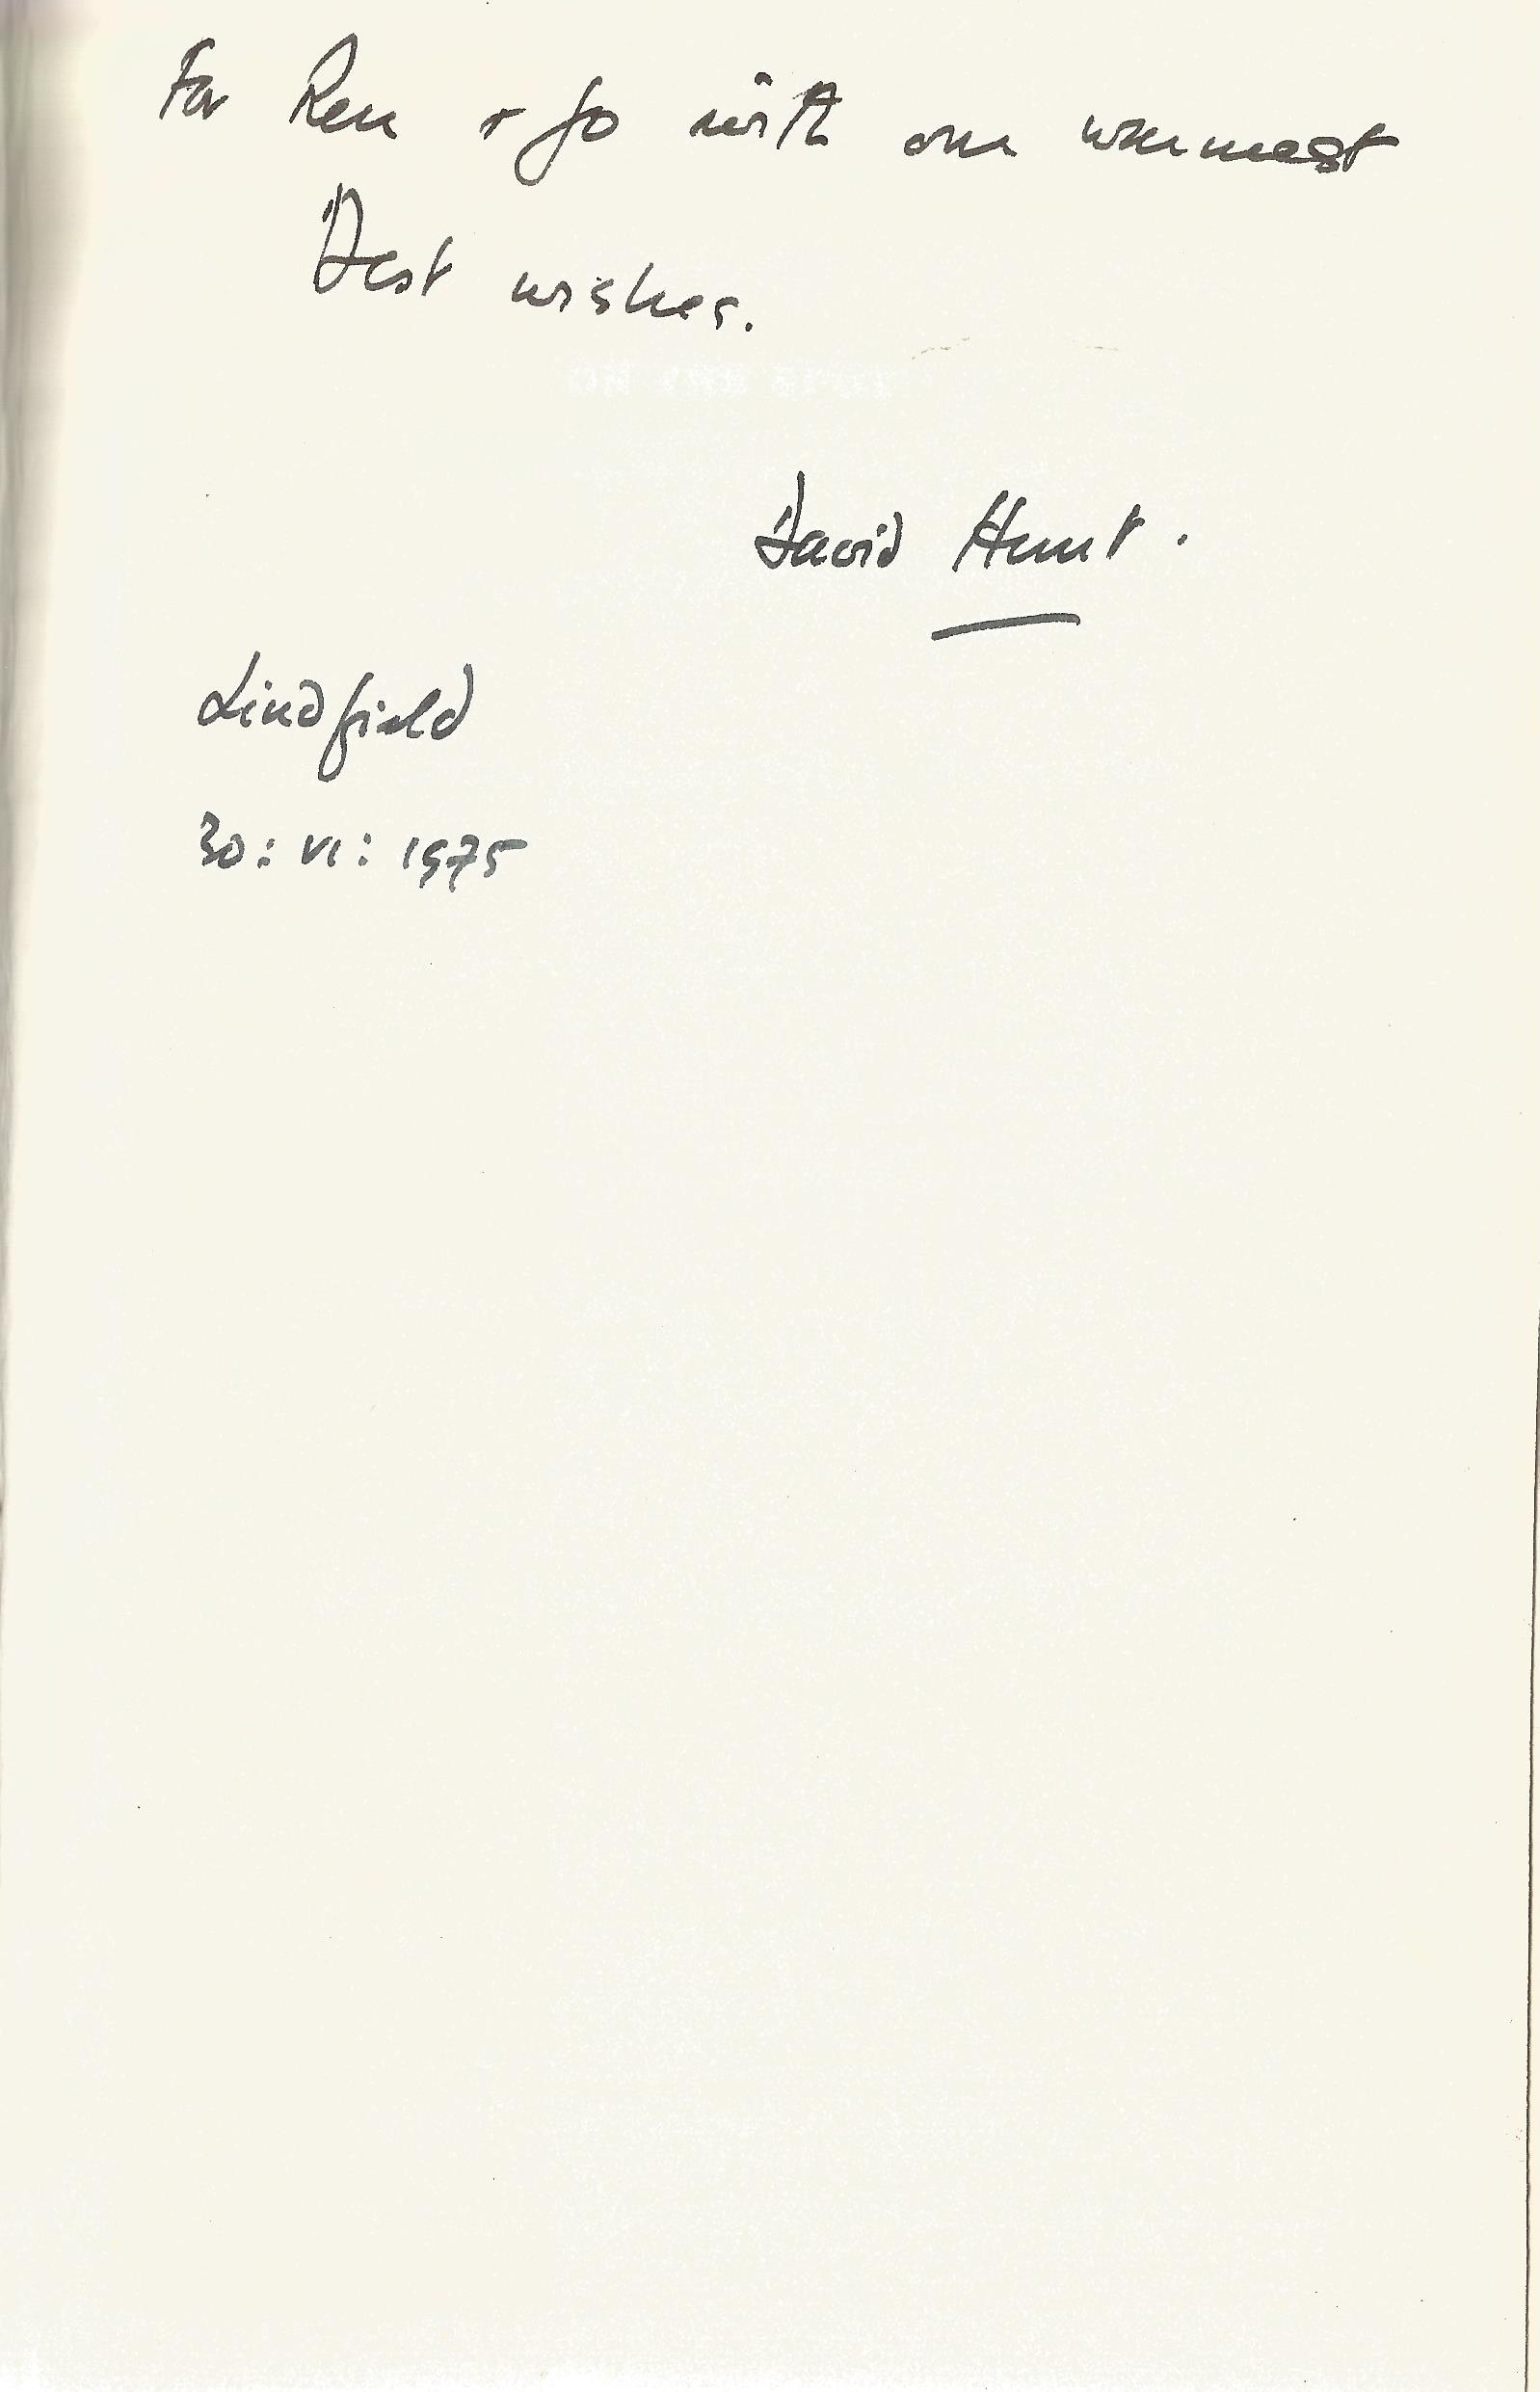 Sir David Hunt Hardback Book On the Spot signed by the Author on the First Page and dated 30th - Image 2 of 2